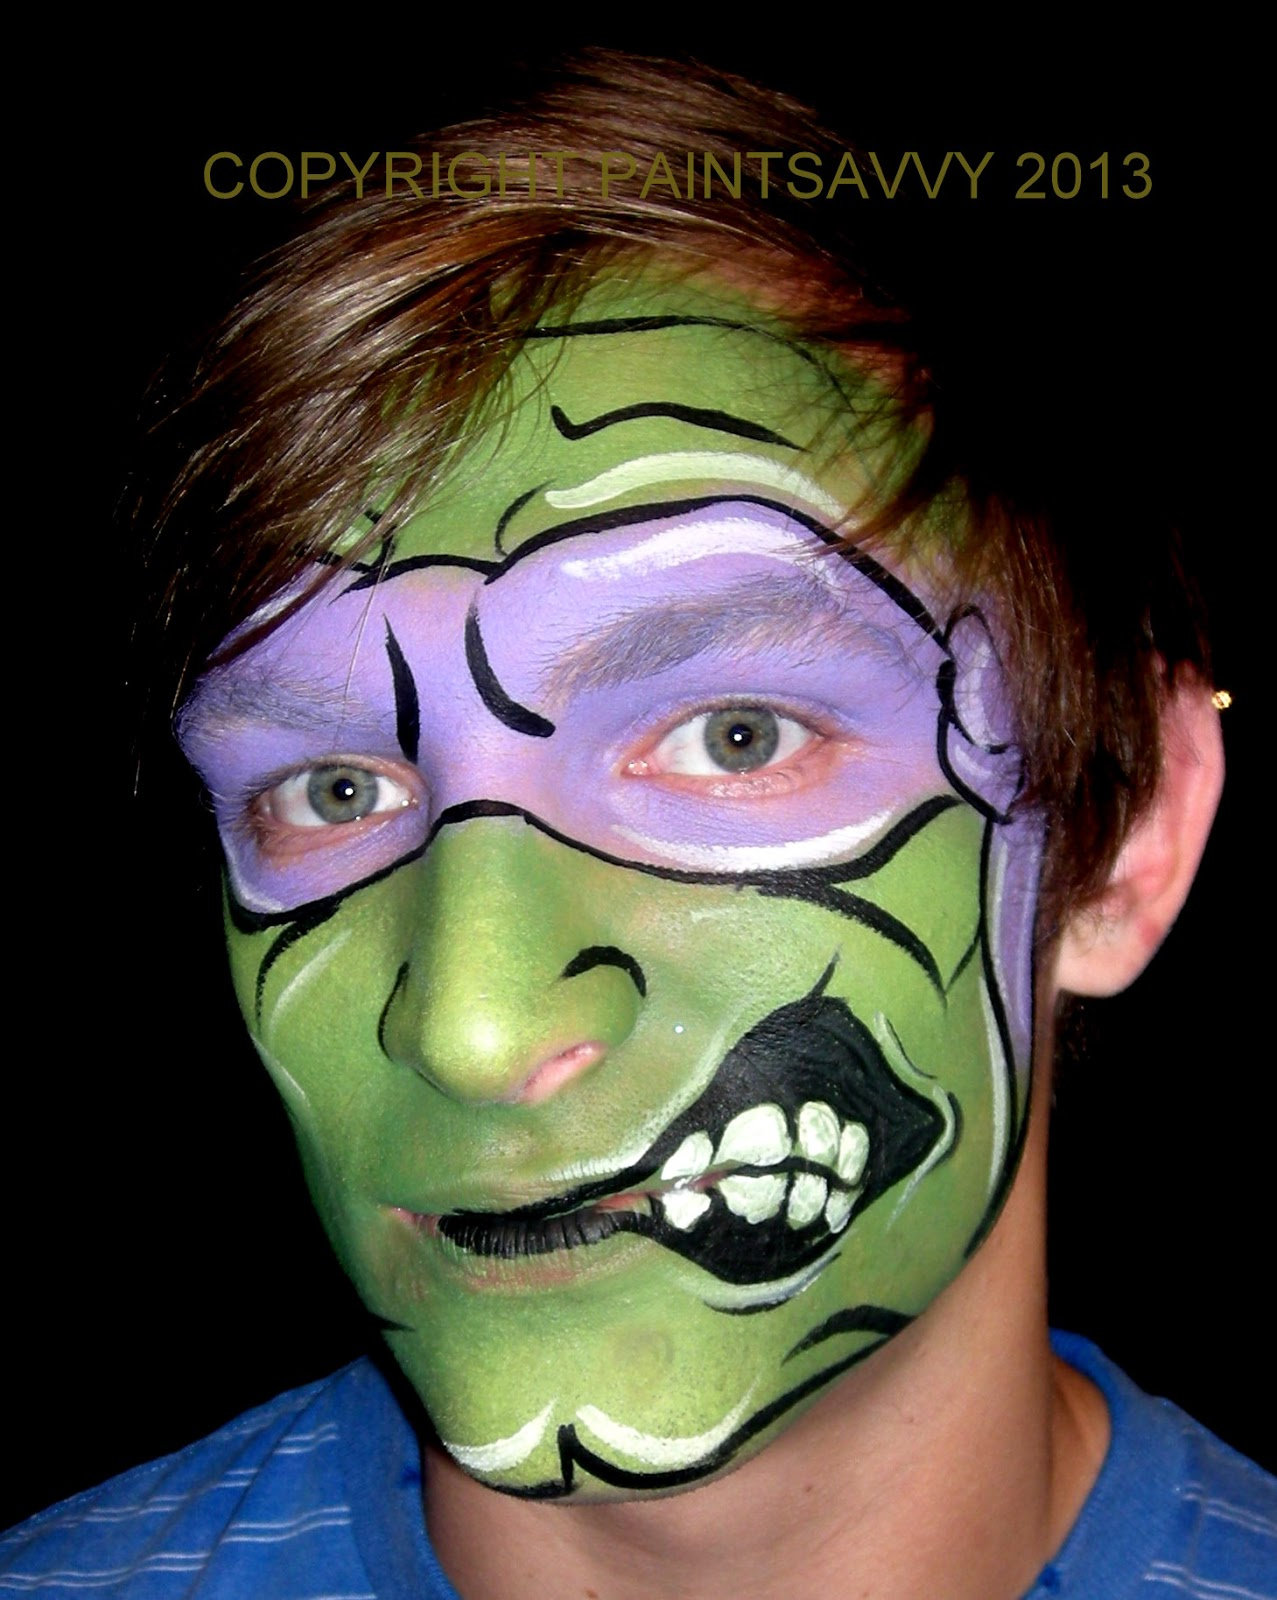 Paint Savvy parties, events and entertainment: Teenage ...